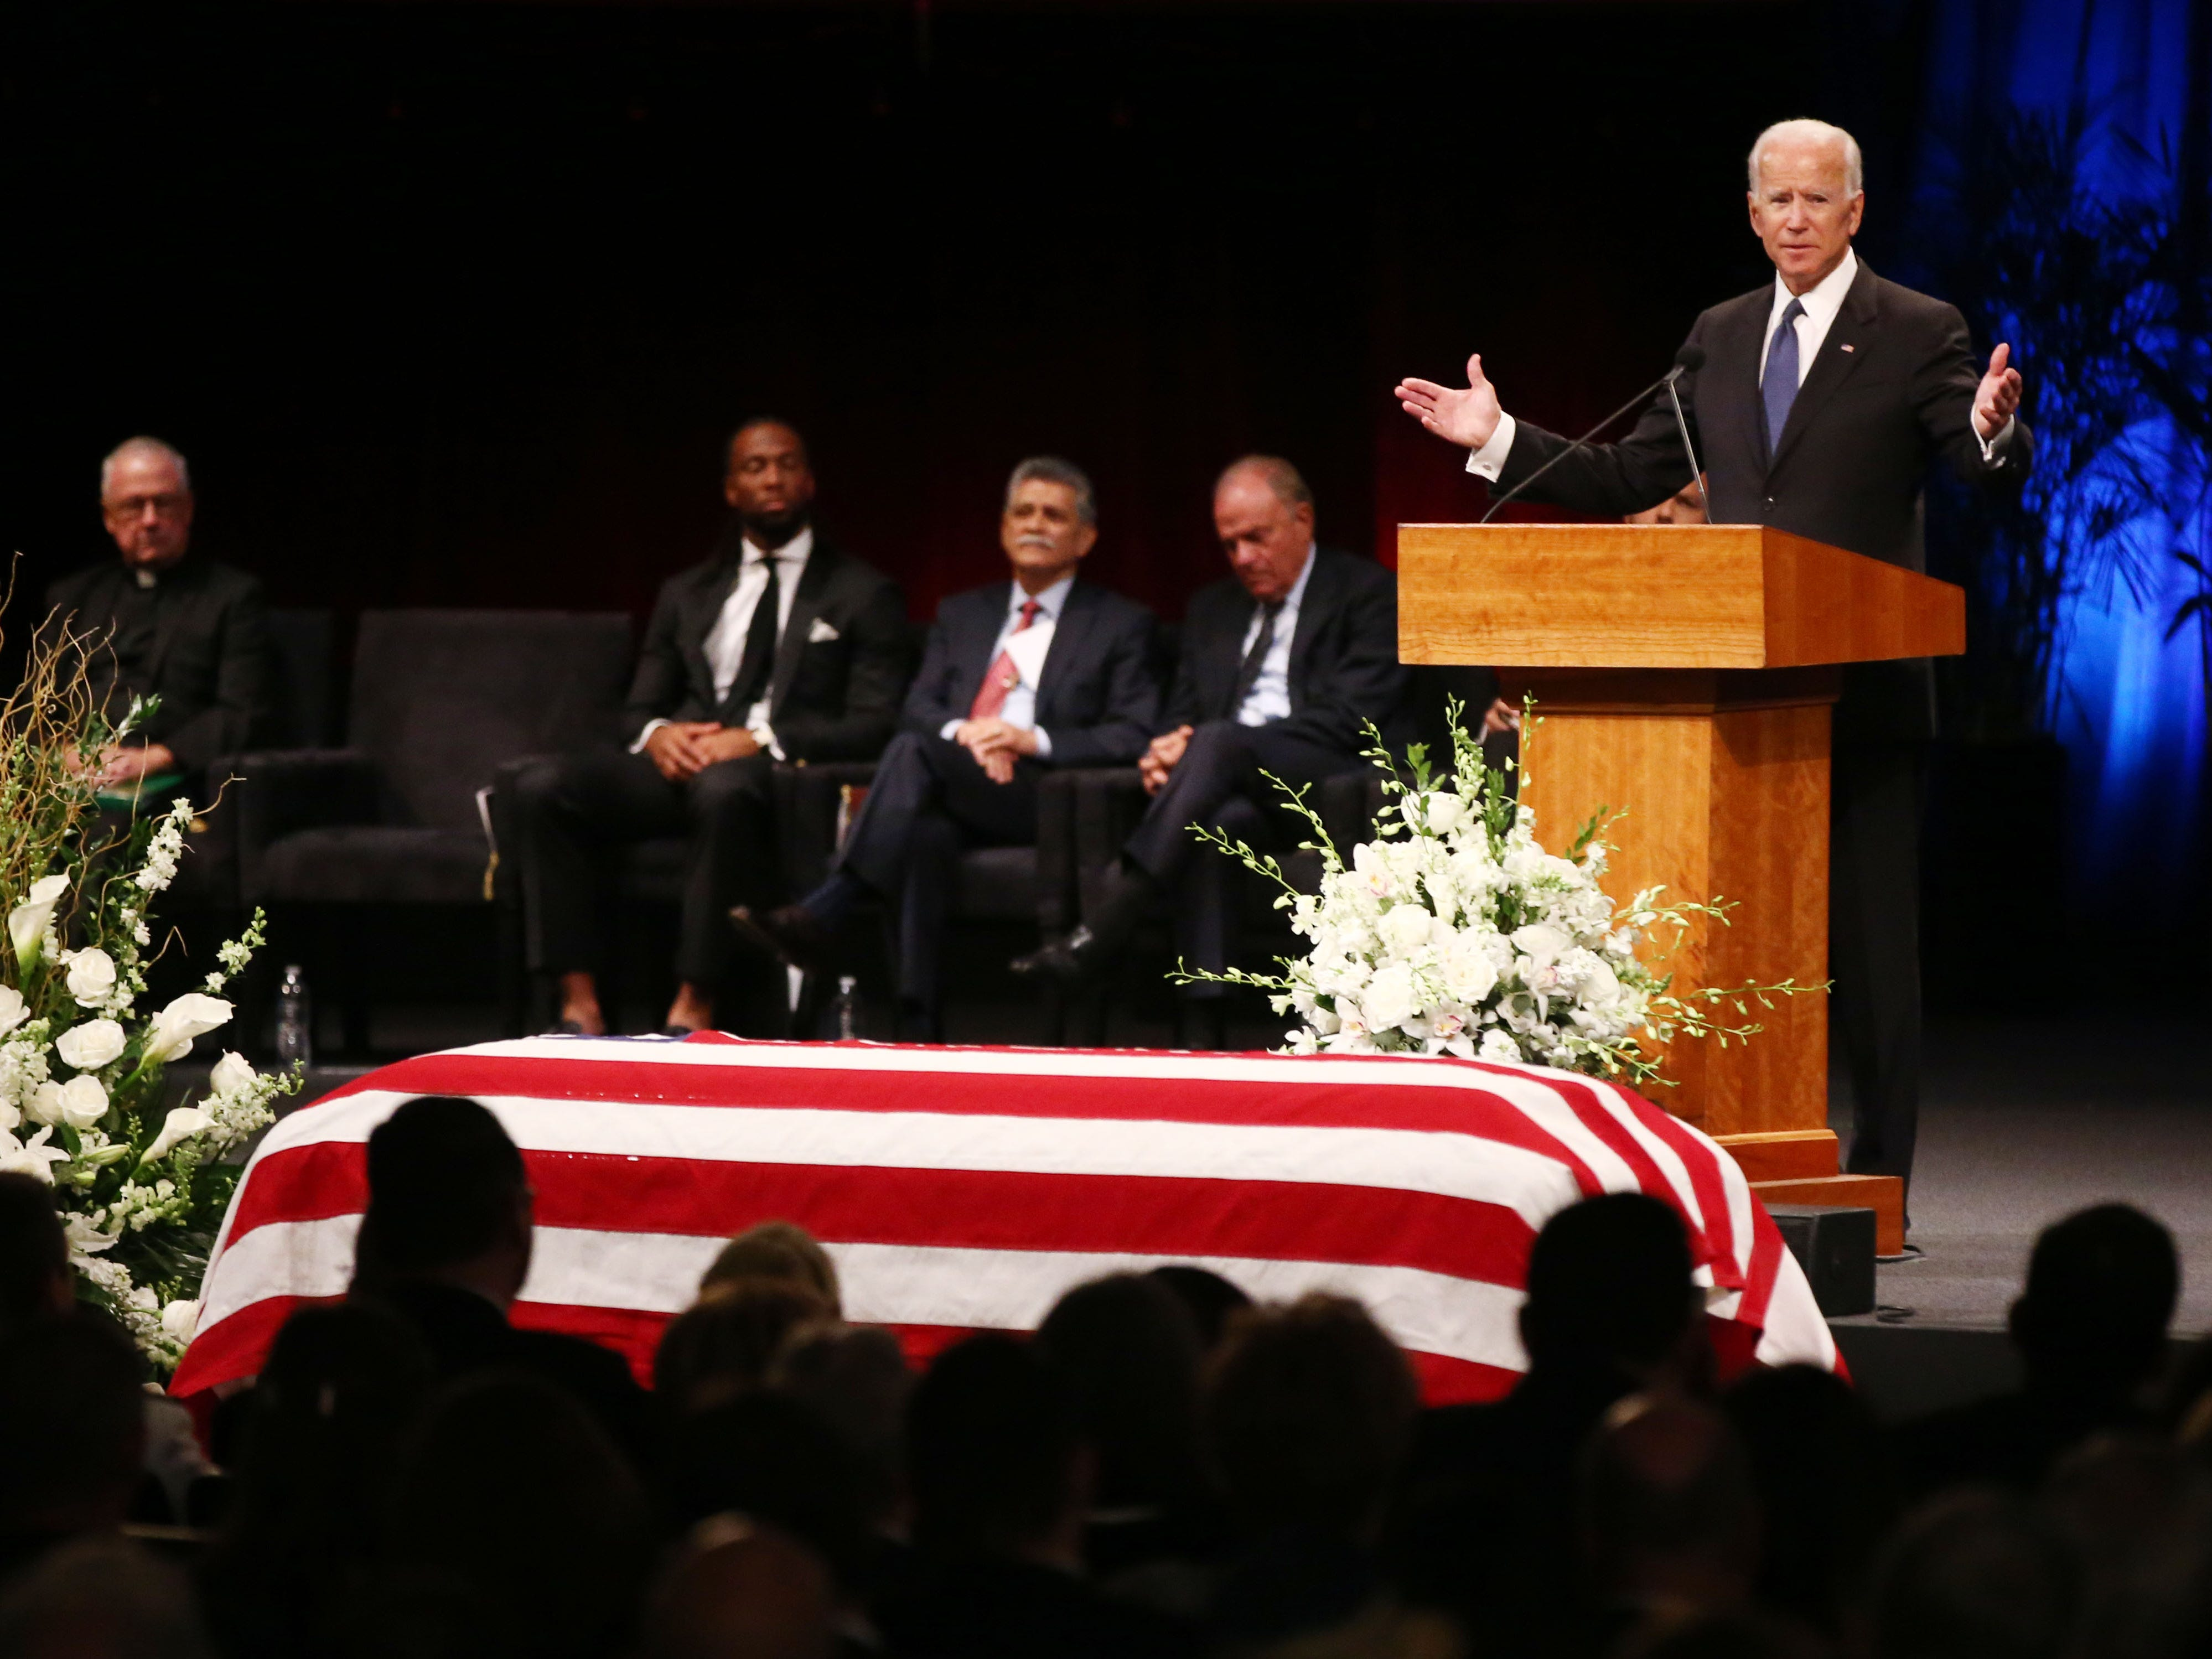 Former Vice President Joseph Biden pays tribute to his friend, Sen. John McCain, during a memorial service at North Phoenix Baptist Church, Aug. 30, 2018, in Phoenix.